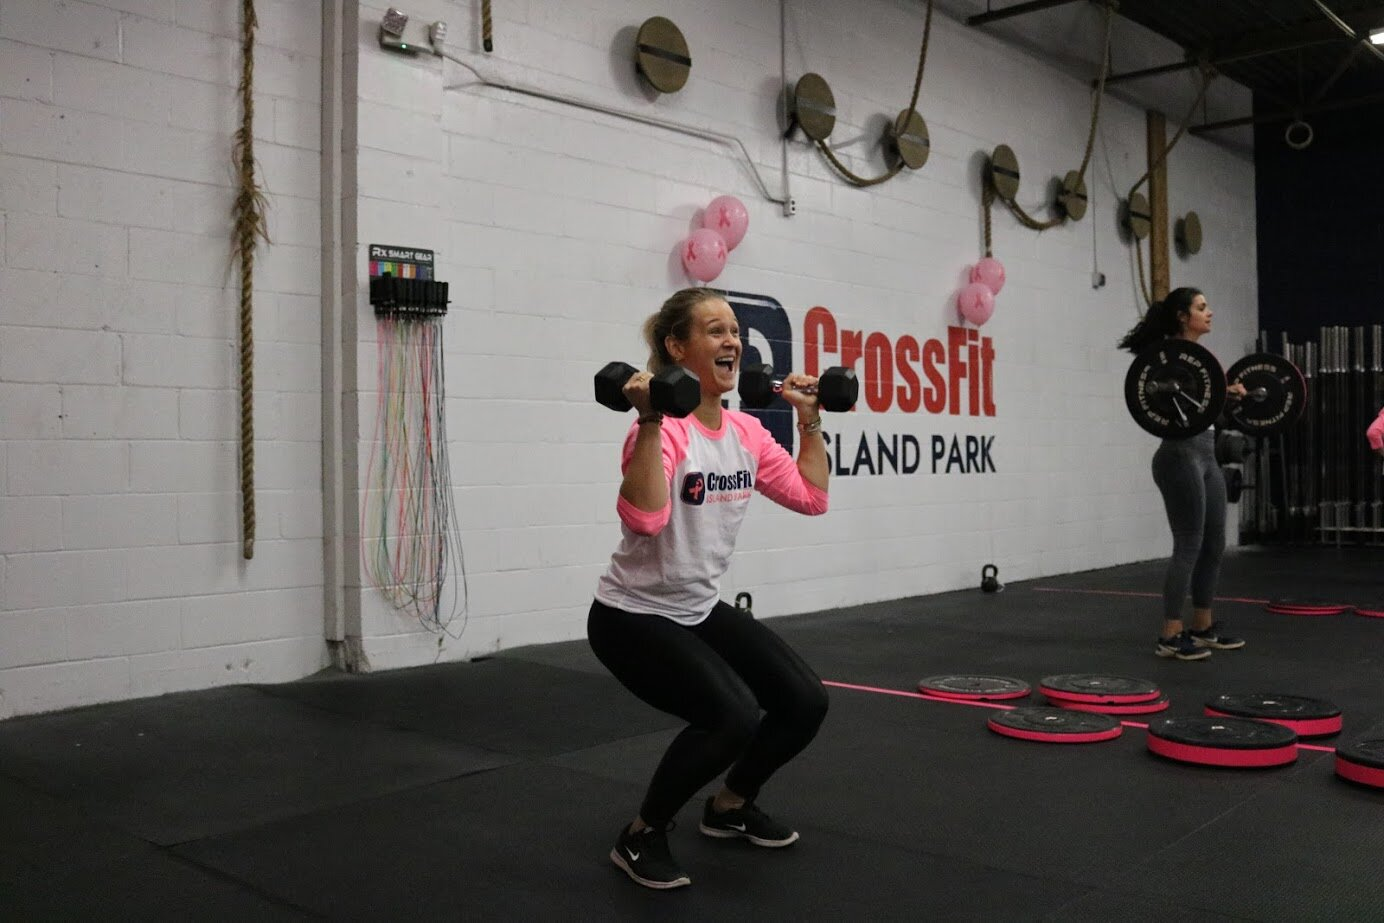 Margaret (11 months in remission) joined us this year for our Barbells for Boobs event. Last year, we raised money to help off-set her medical costs to battle breast cancer.